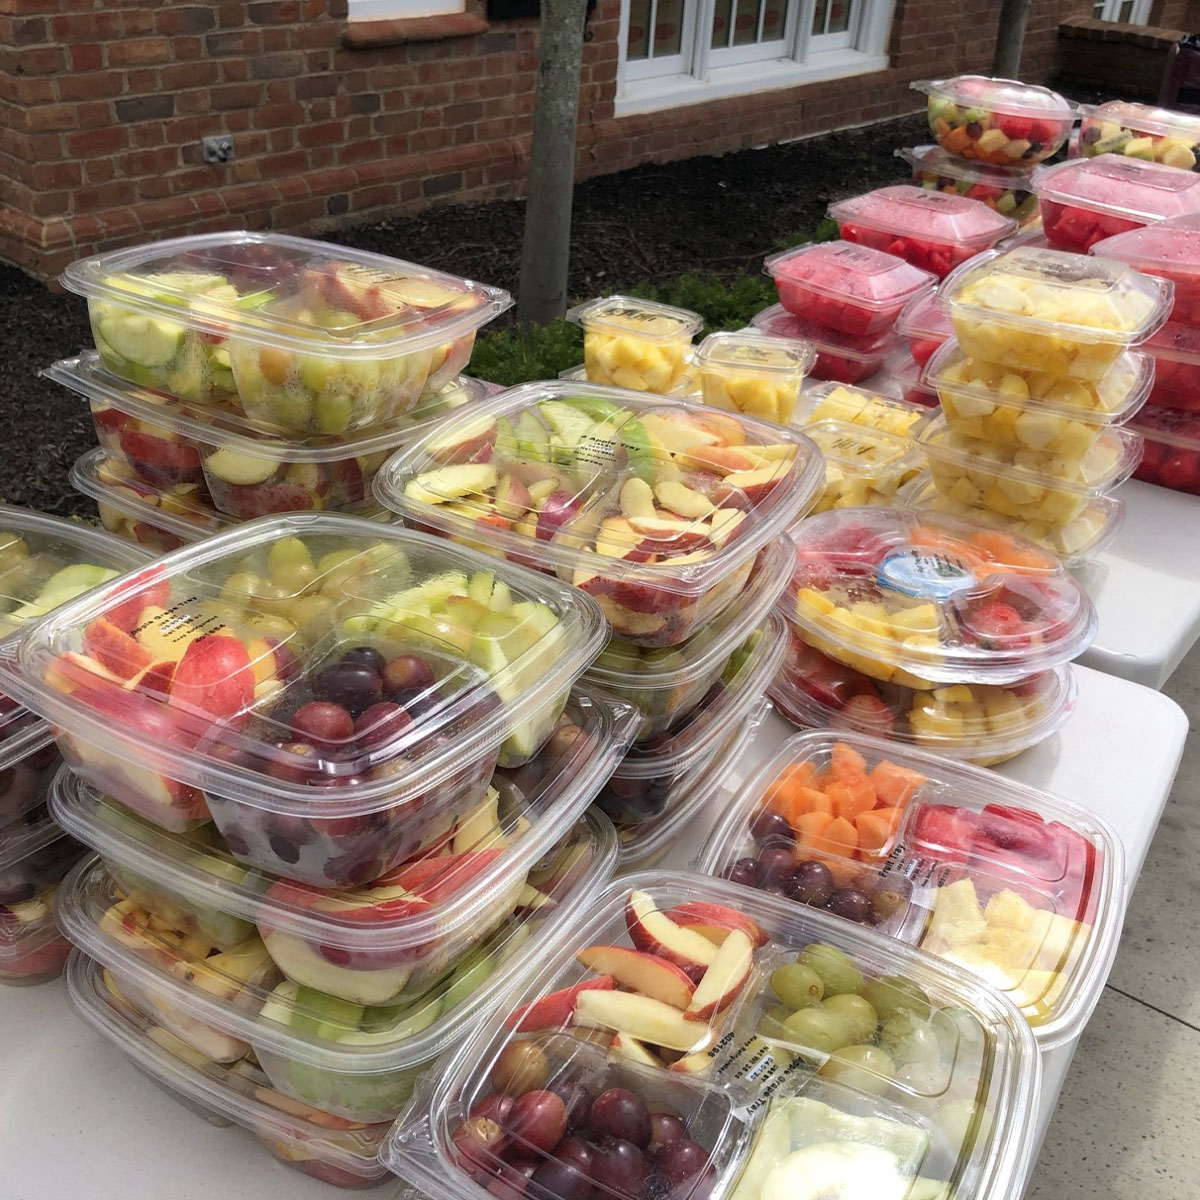 Containers of Fruit